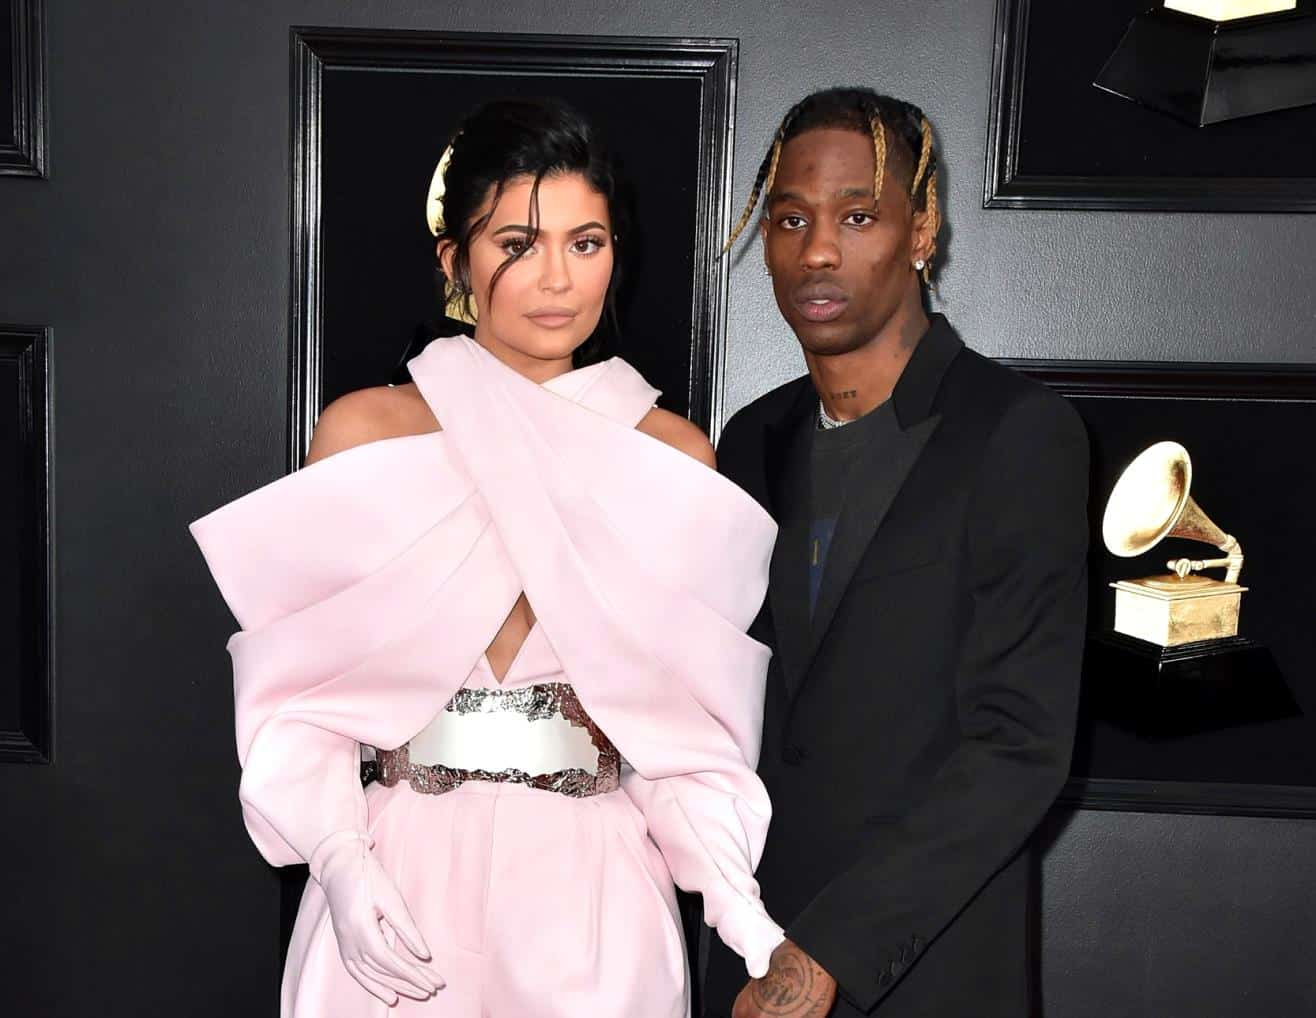 Travis Scott says Kylie Jenner cheating rumours 'not true'